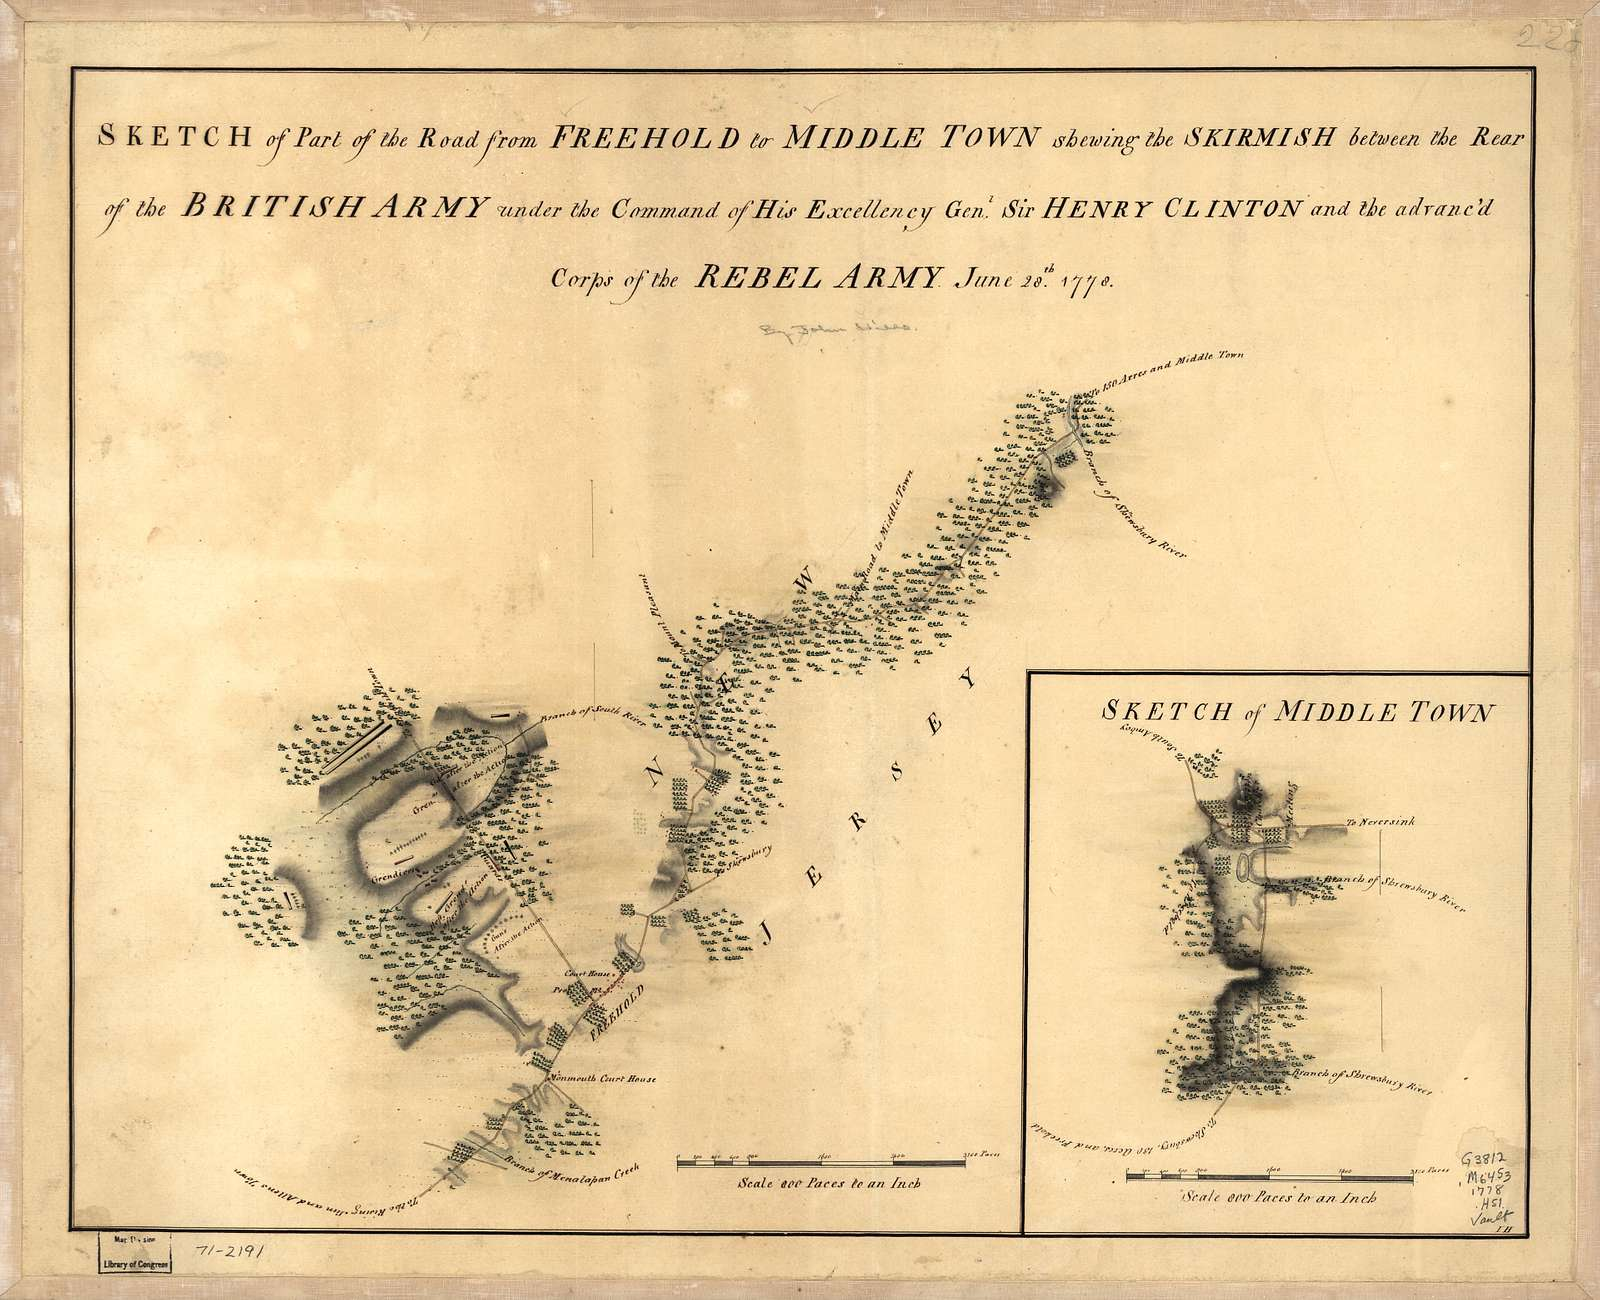 Sketch of part of the road from Freehold to Middle Town shewing the skirmish between the rear of the British Army under the command of His Excellency Genl. Sir Henry Clinton and the advanc'd corps of the rebel army, June 28th. 1778. Sketch of Middle Town.